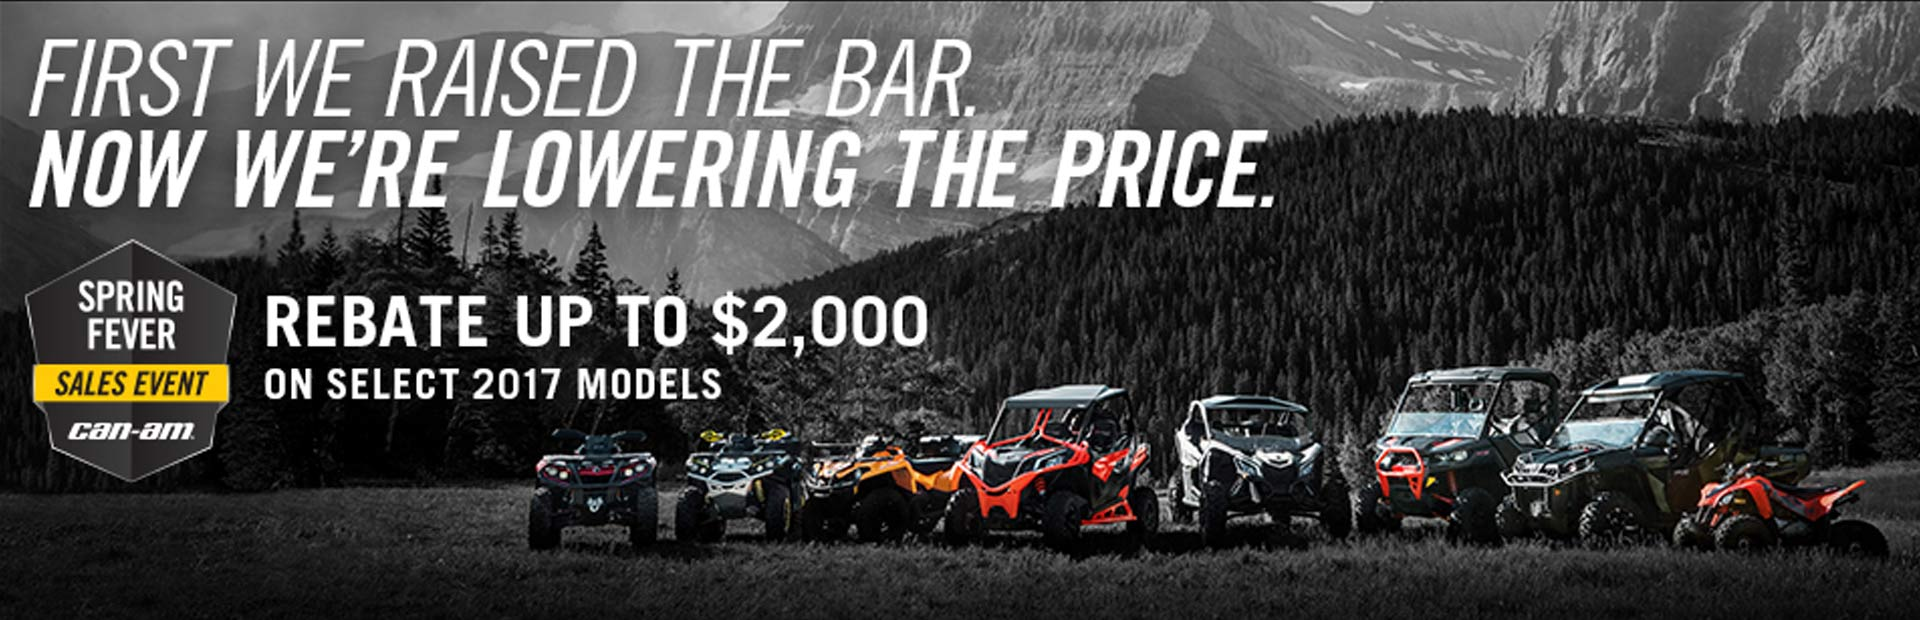 Can-Am Spring Fever Sales Event. Click here for more details.